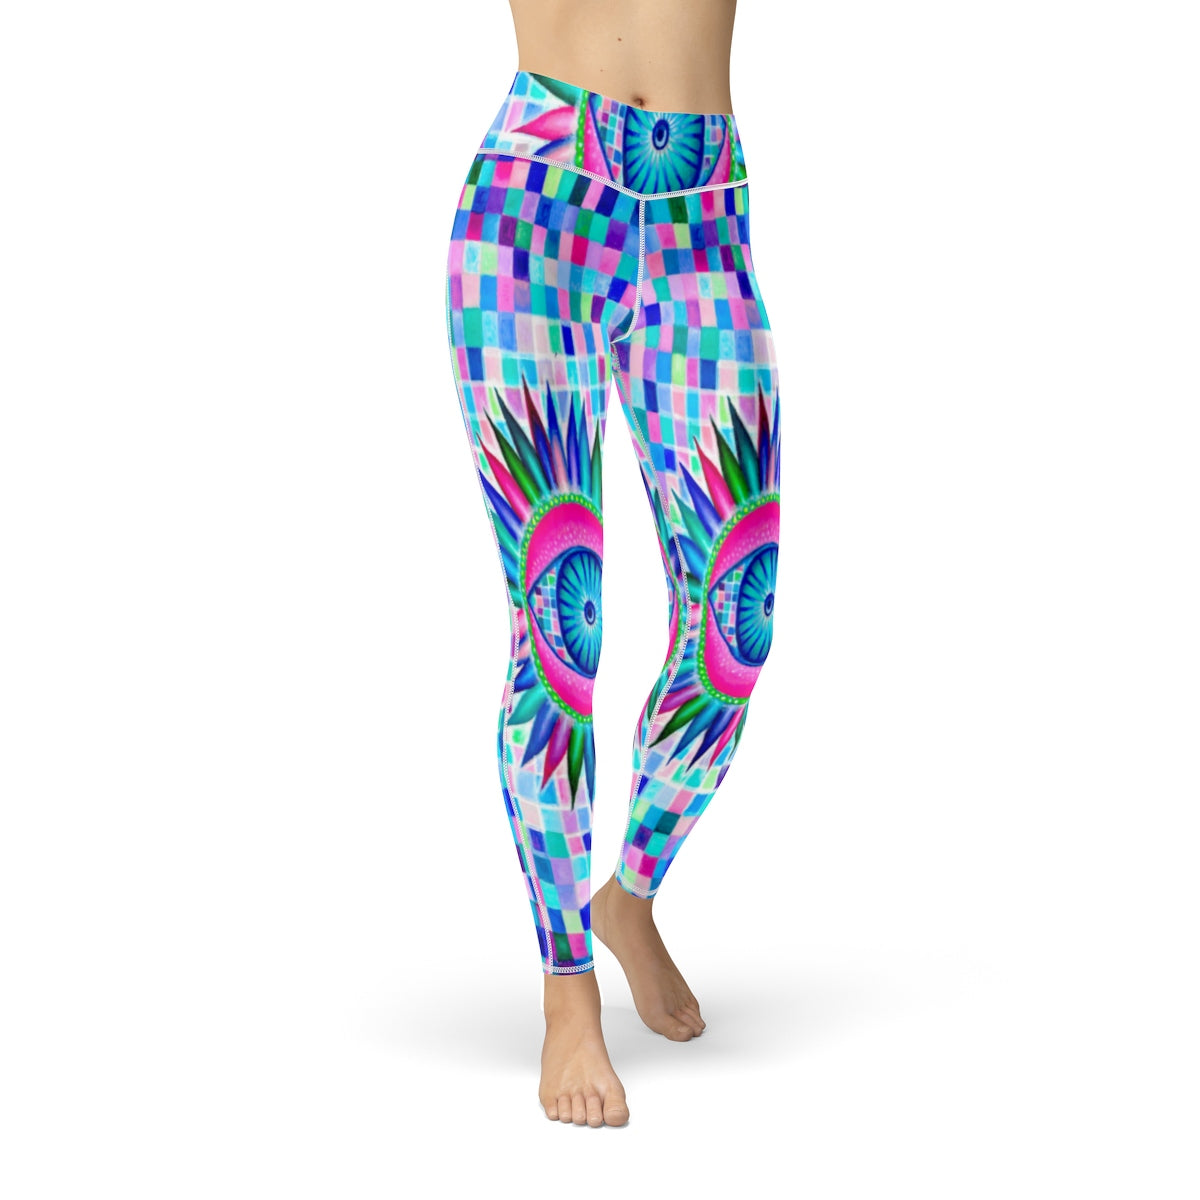 Fractal Eyes Cut & Sew Sport Leggings